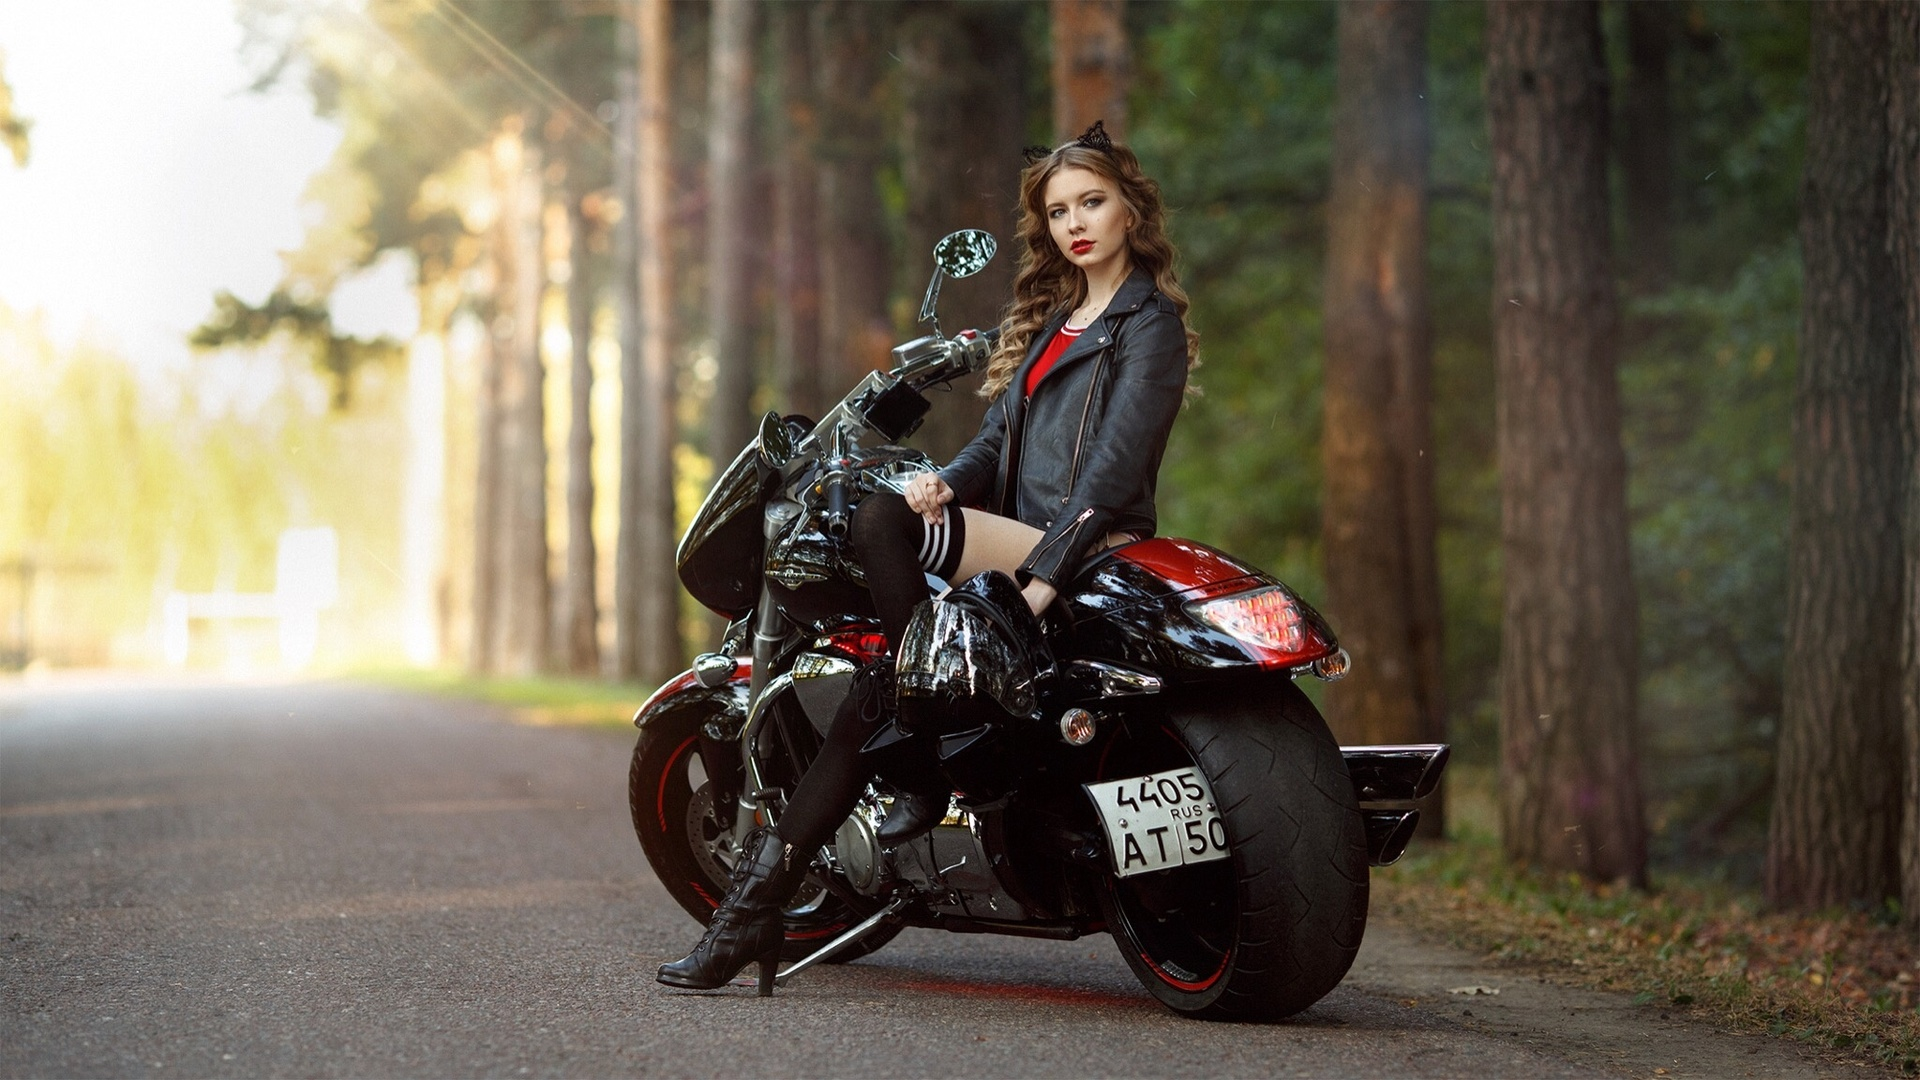 Motorcycle Girl Wallpaper: 4K Girl On A Motorcycle Wallpapers High Quality